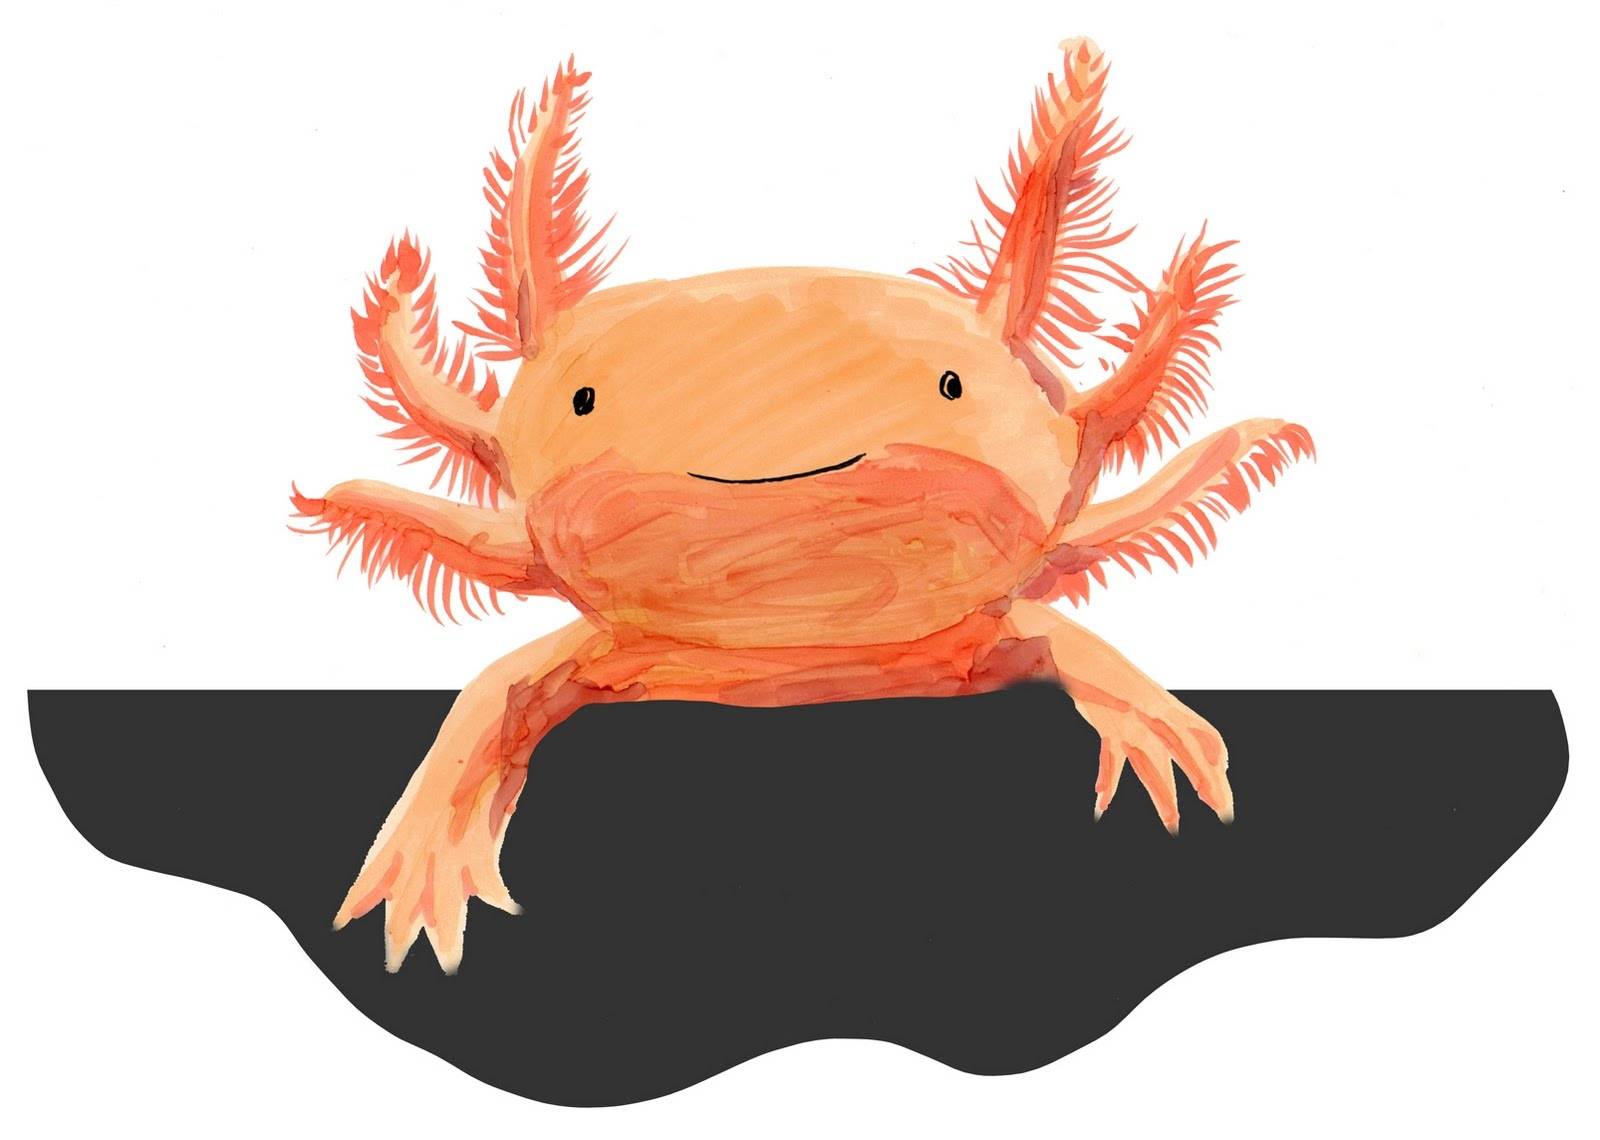 Axolotl clipart #2, Download drawings